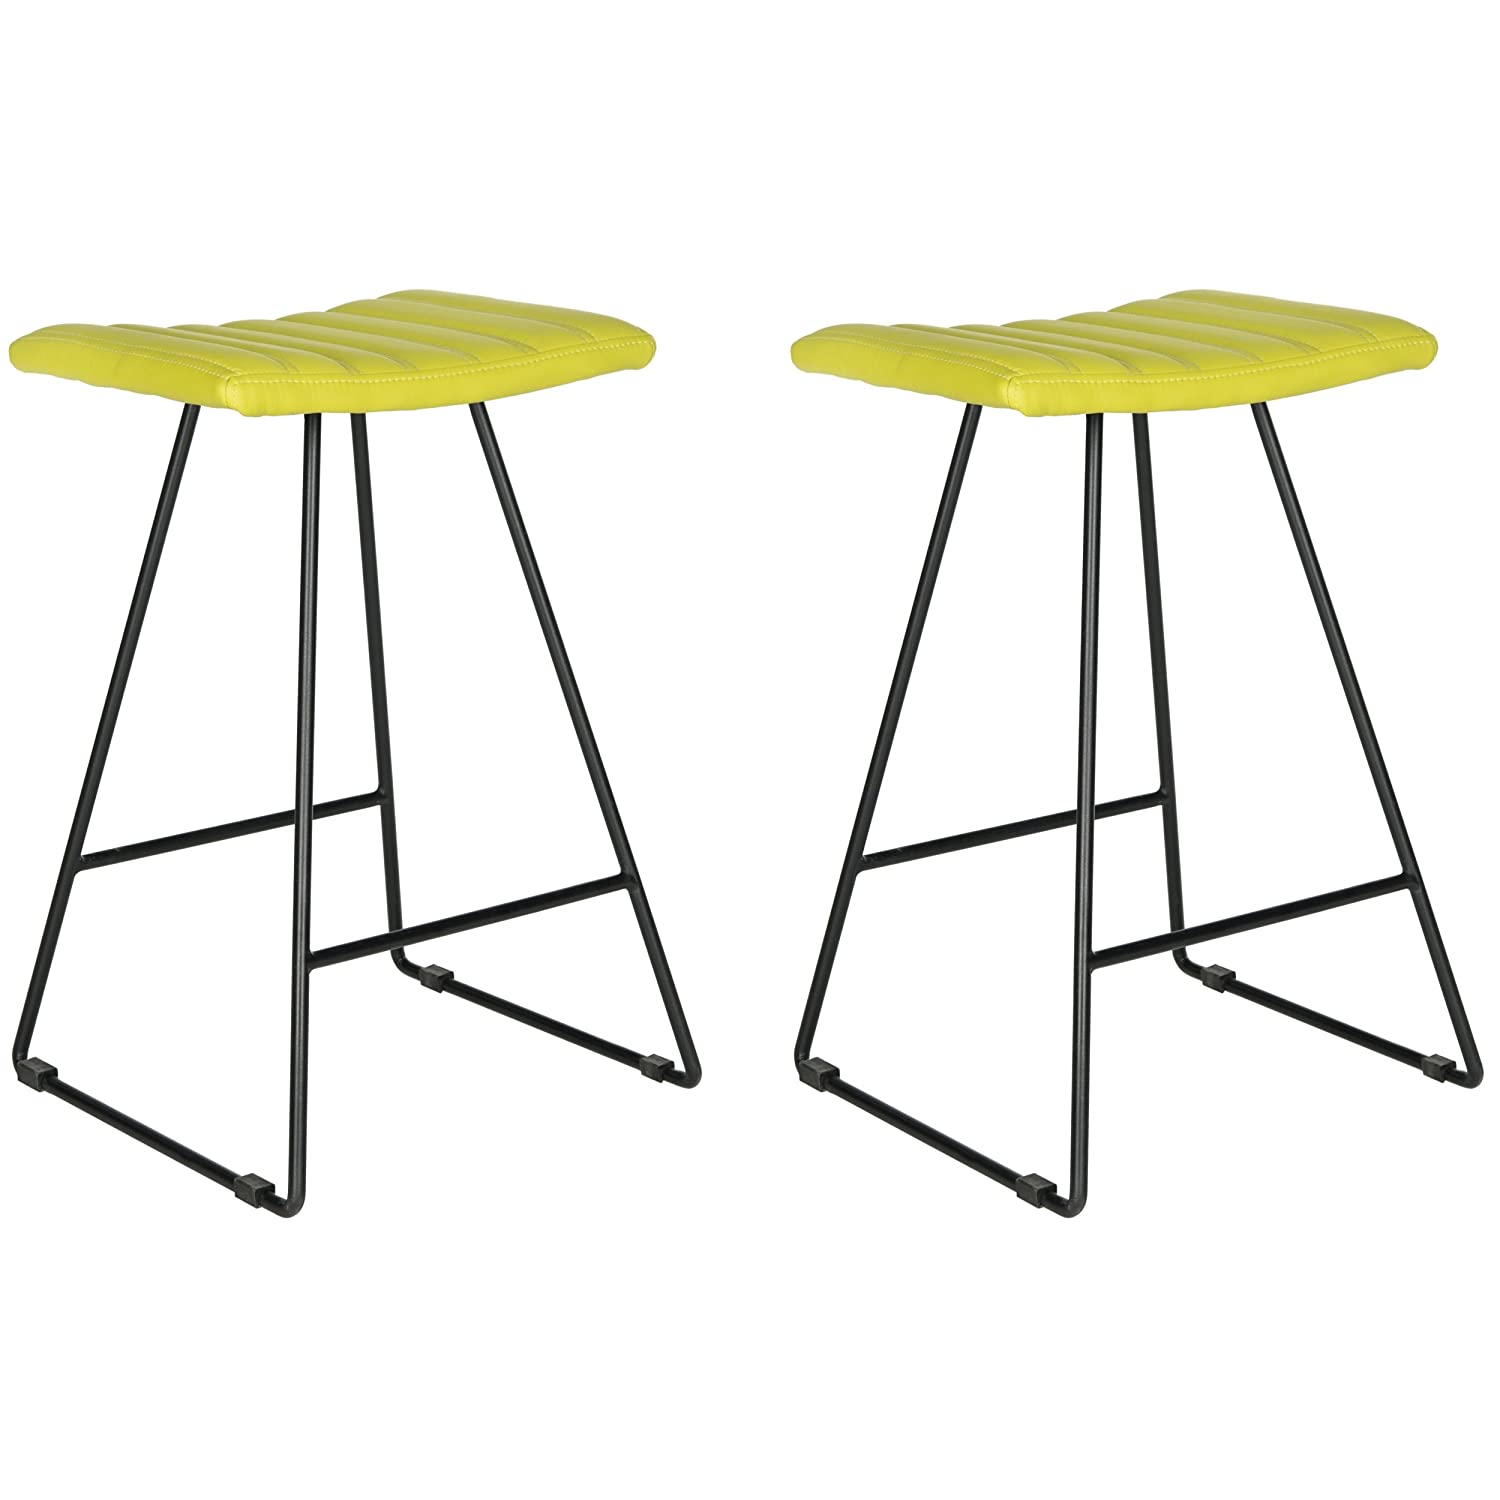 Safavieh Home Collection Akito Mid-Century Modern Green 26-inch Counter Stool Set of 2